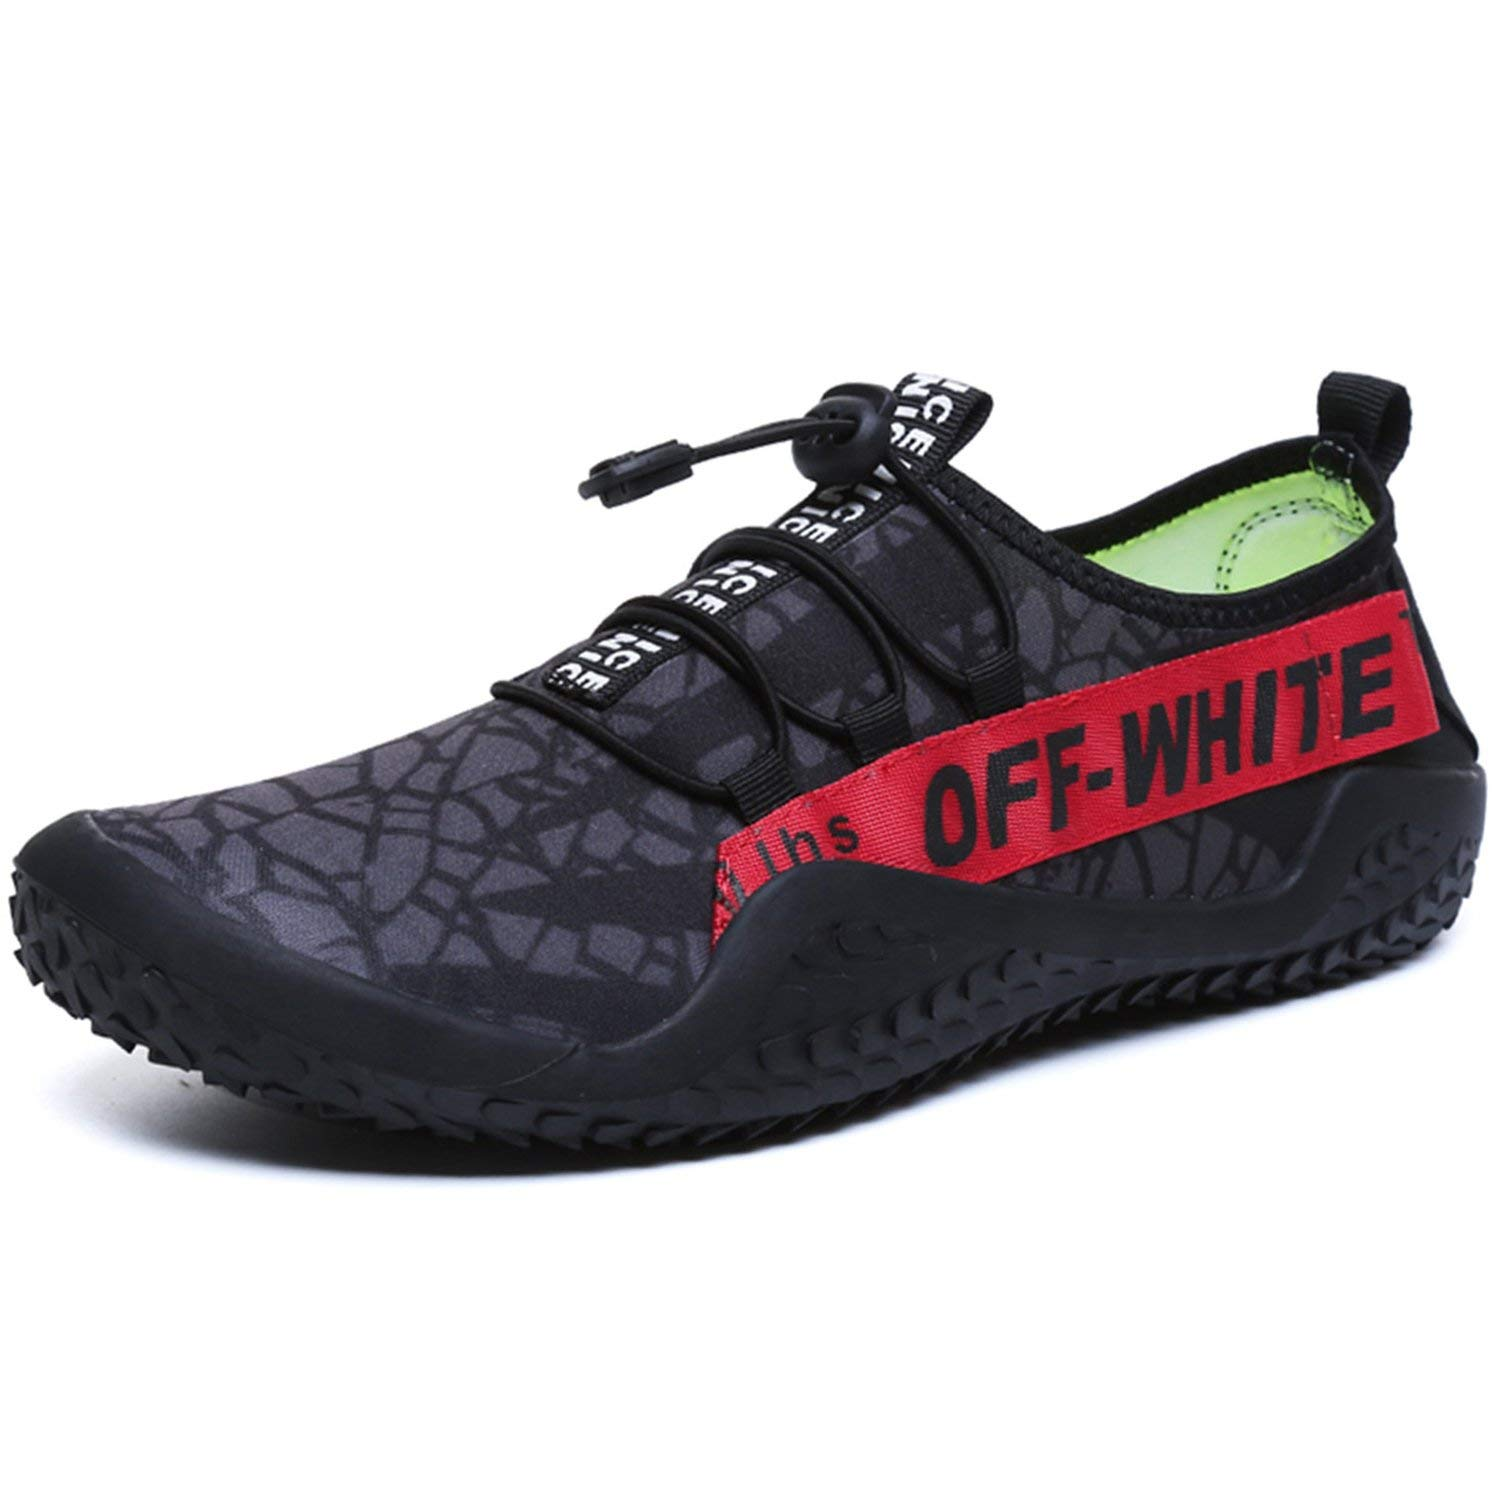 FEETICITY Mens Water Shoes Quick Dry Non-Slip Outdoor Water Beach Swim Sneakers with Drainage Holes